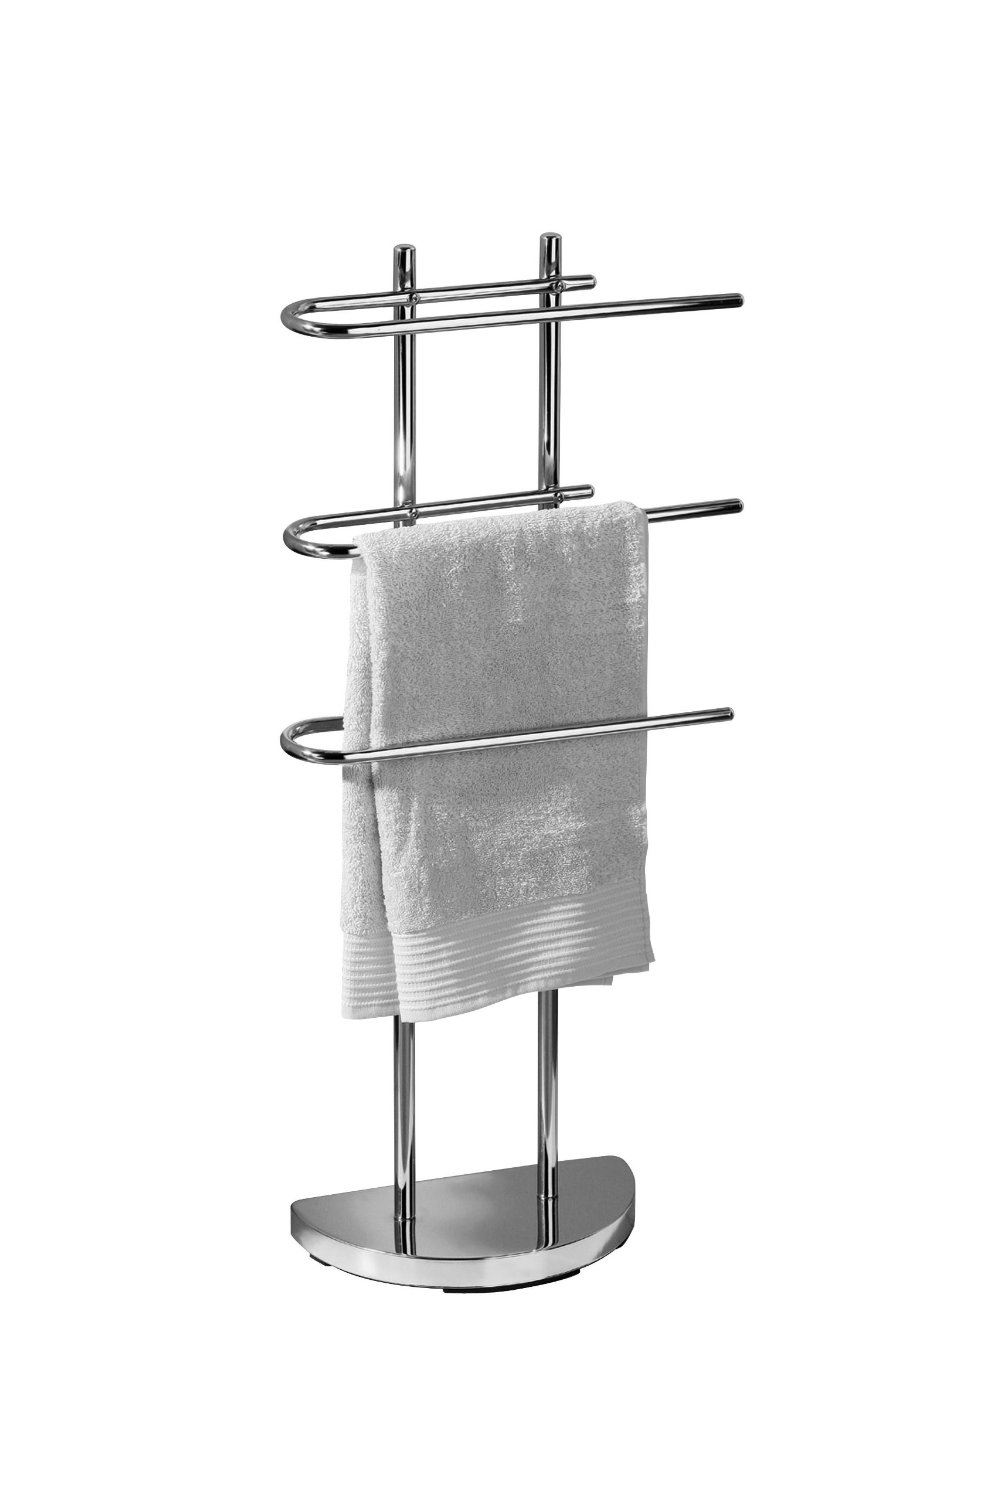 Floor Standing Towel Stand Rack With 3 U Shaped Arms Bathroom  D